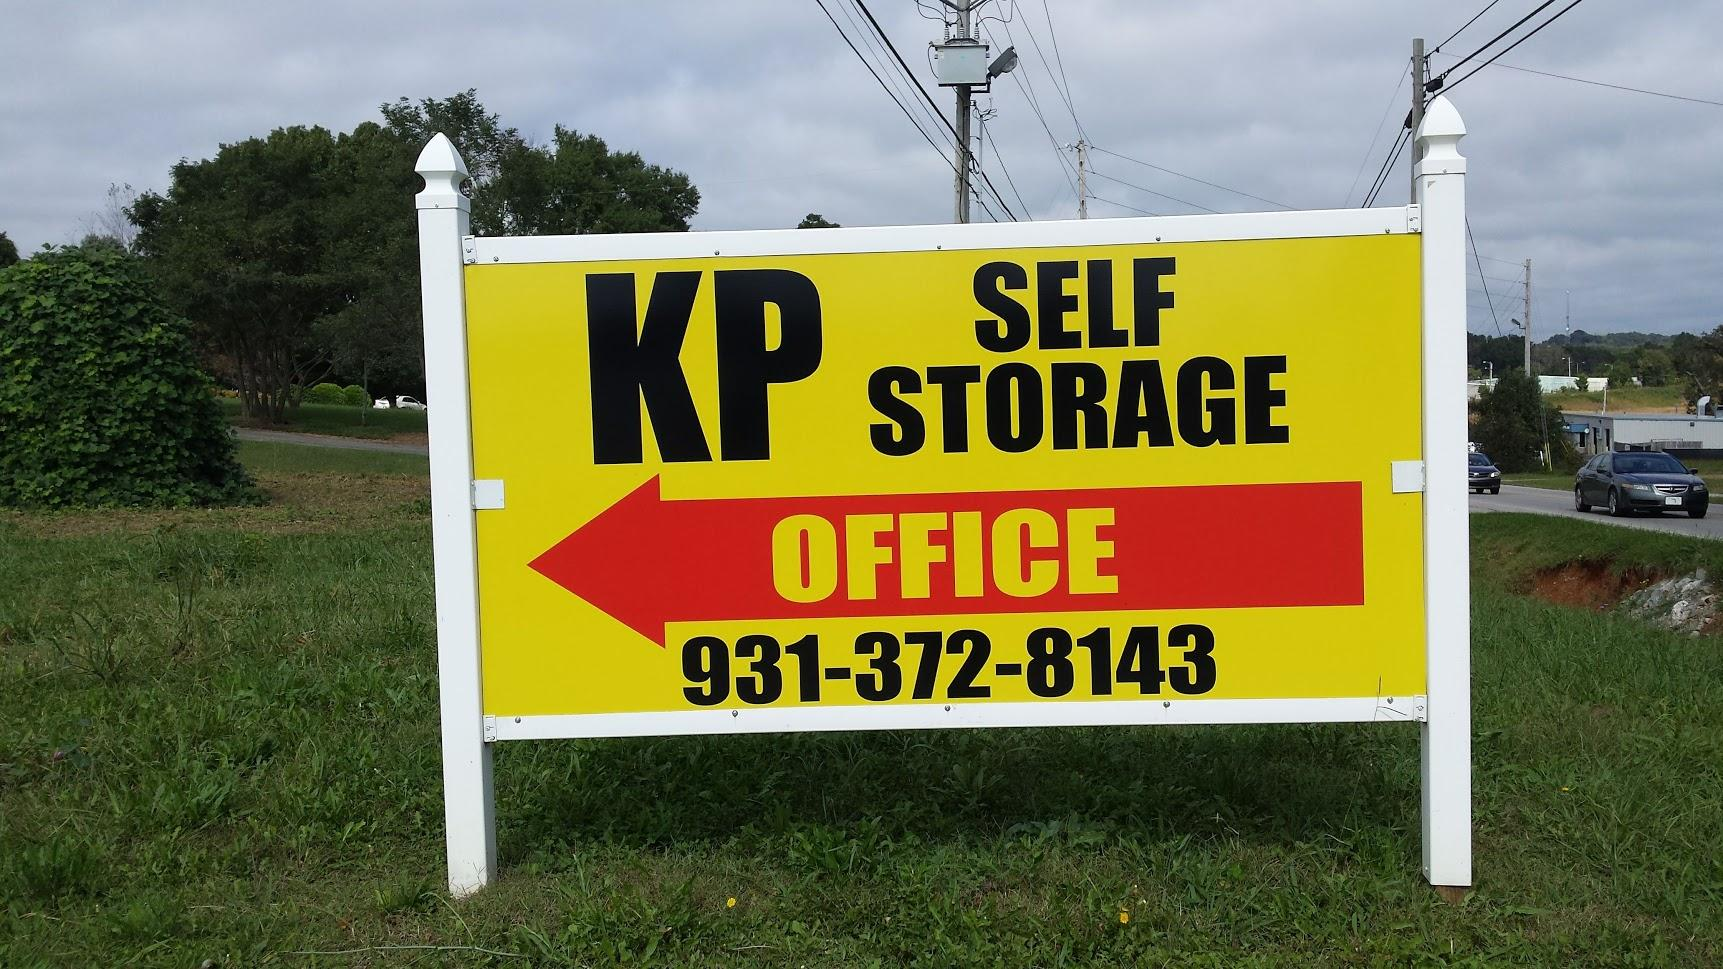 KP Self Storage New Sign